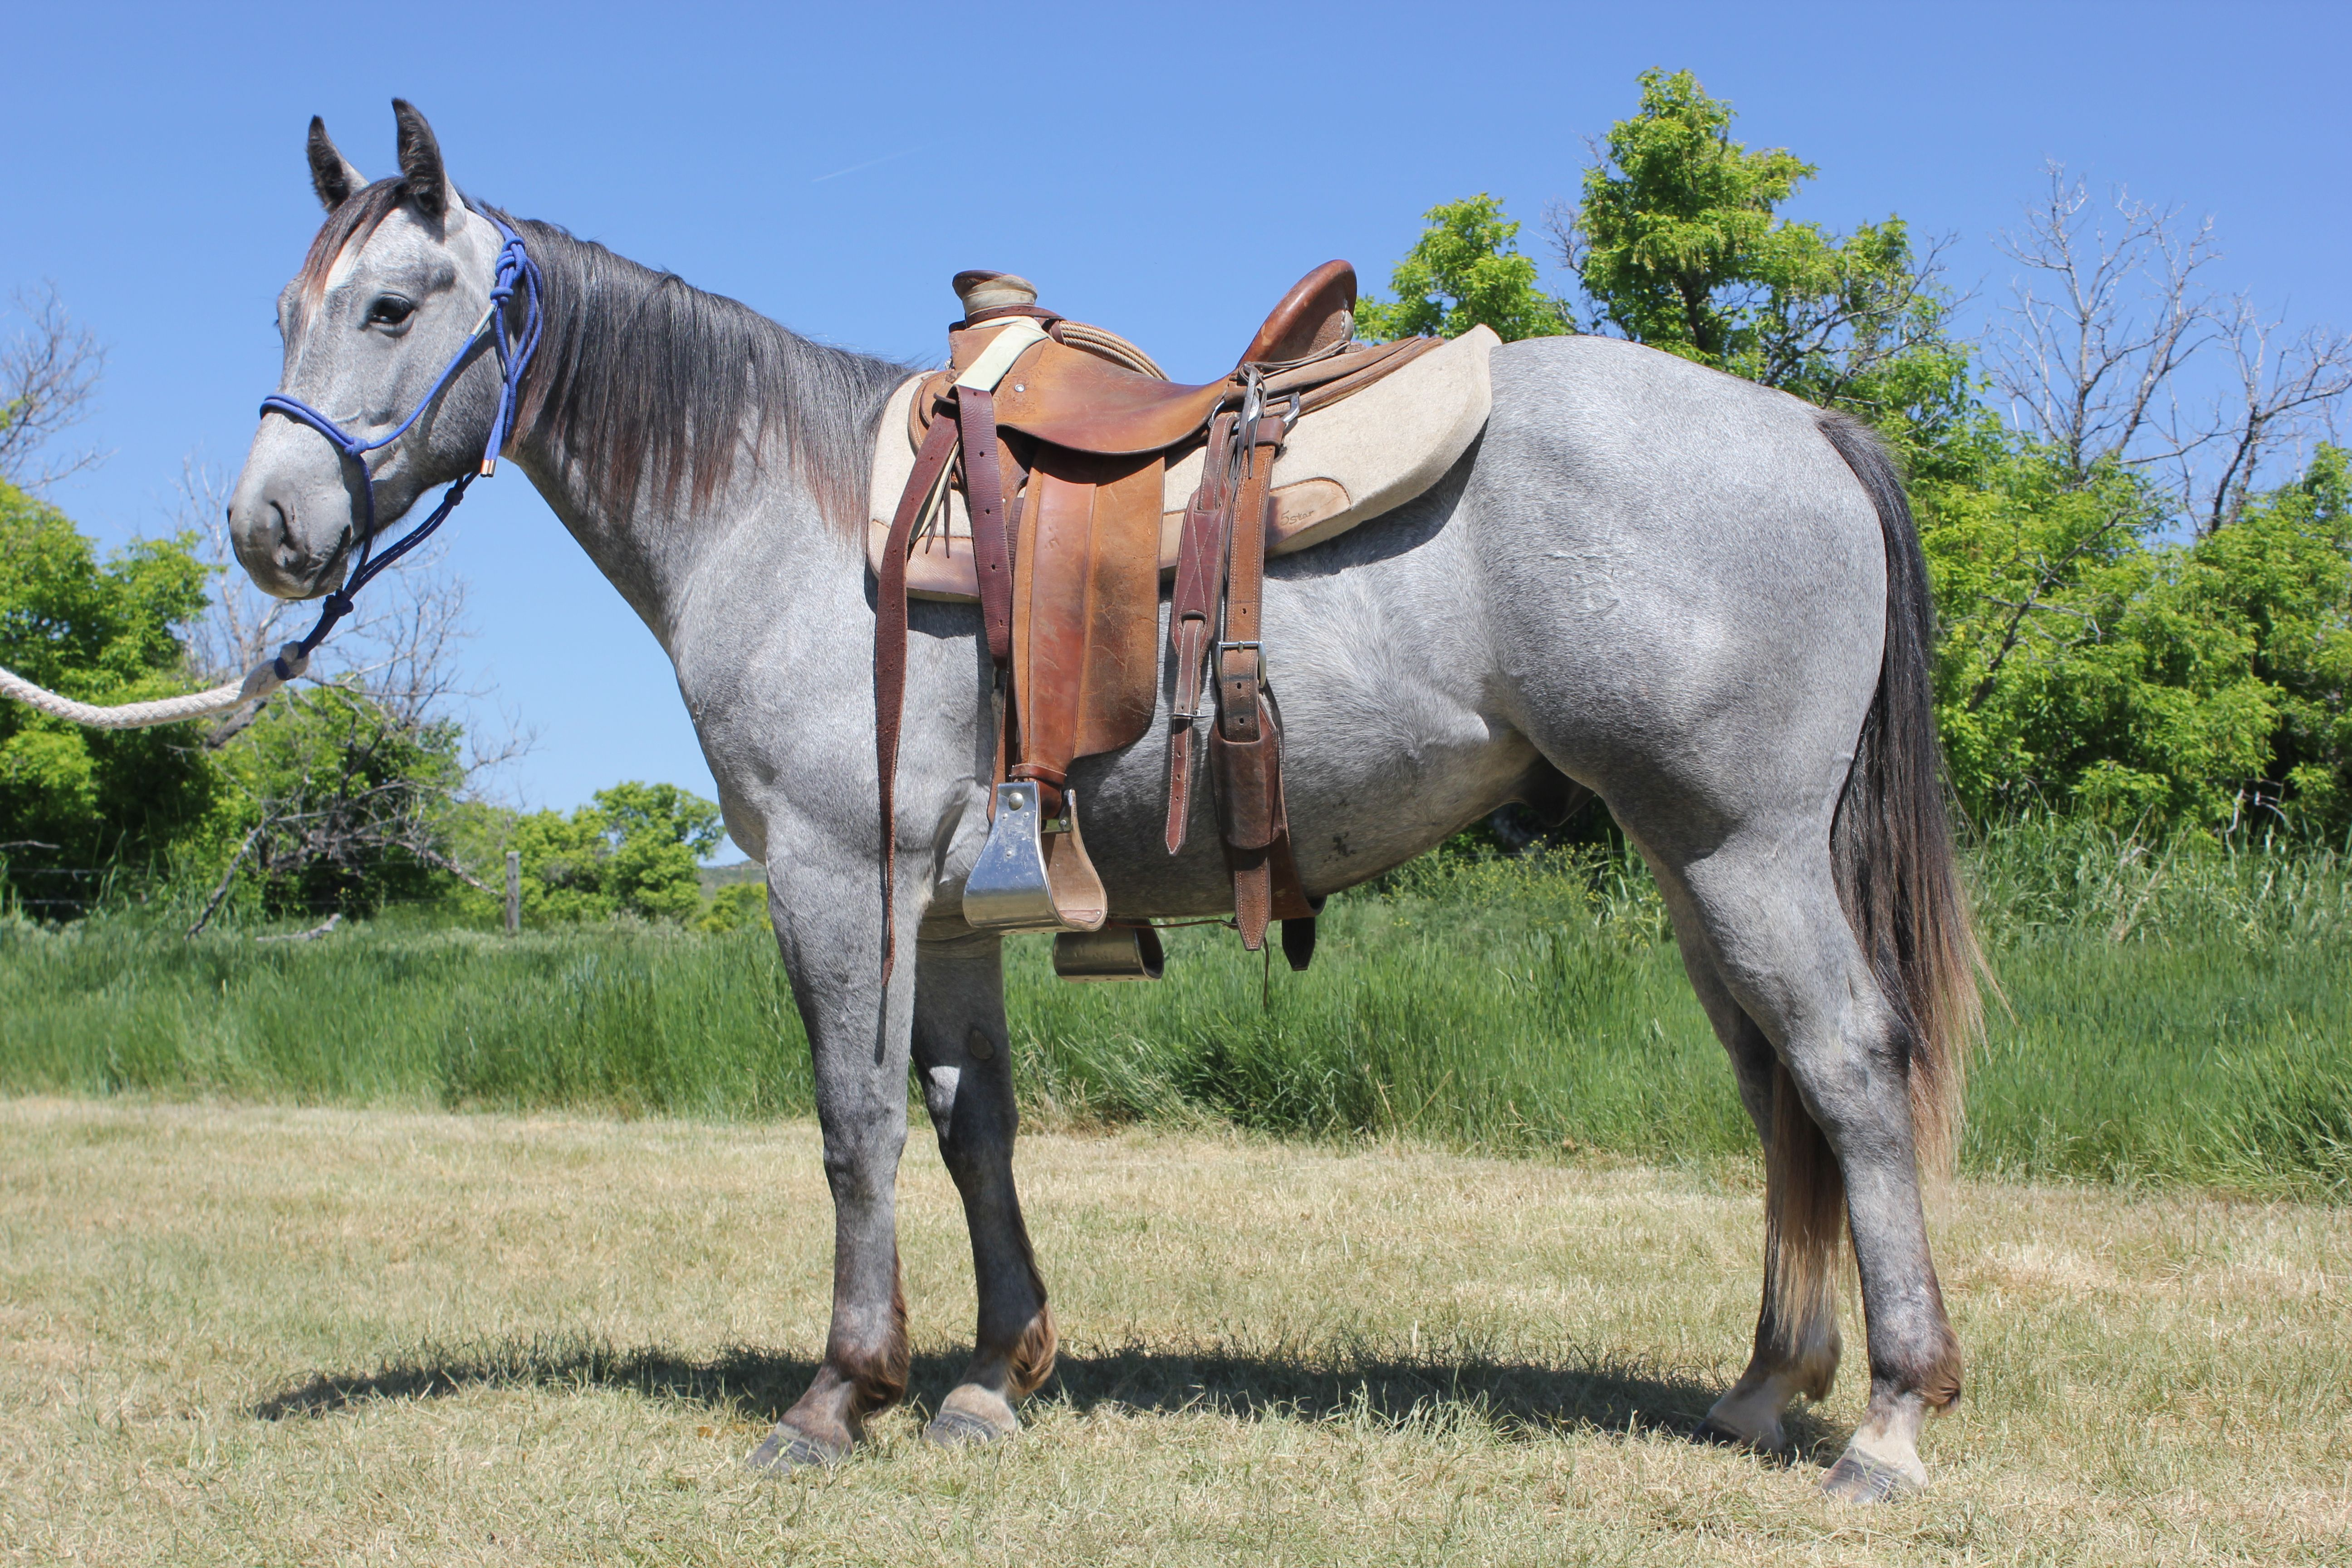 Handle The Big Time is a two year old gray gelding owned by Woody Bartlett, by One Time Pepto and out of NCHA money earning mare, Can You Handle It and HE SELLS at the WYO Quarter Horse Sales. He was started in The Bartlett Colt Starting Clinic in June. Plan to attend: http://goo.gl/3A9206